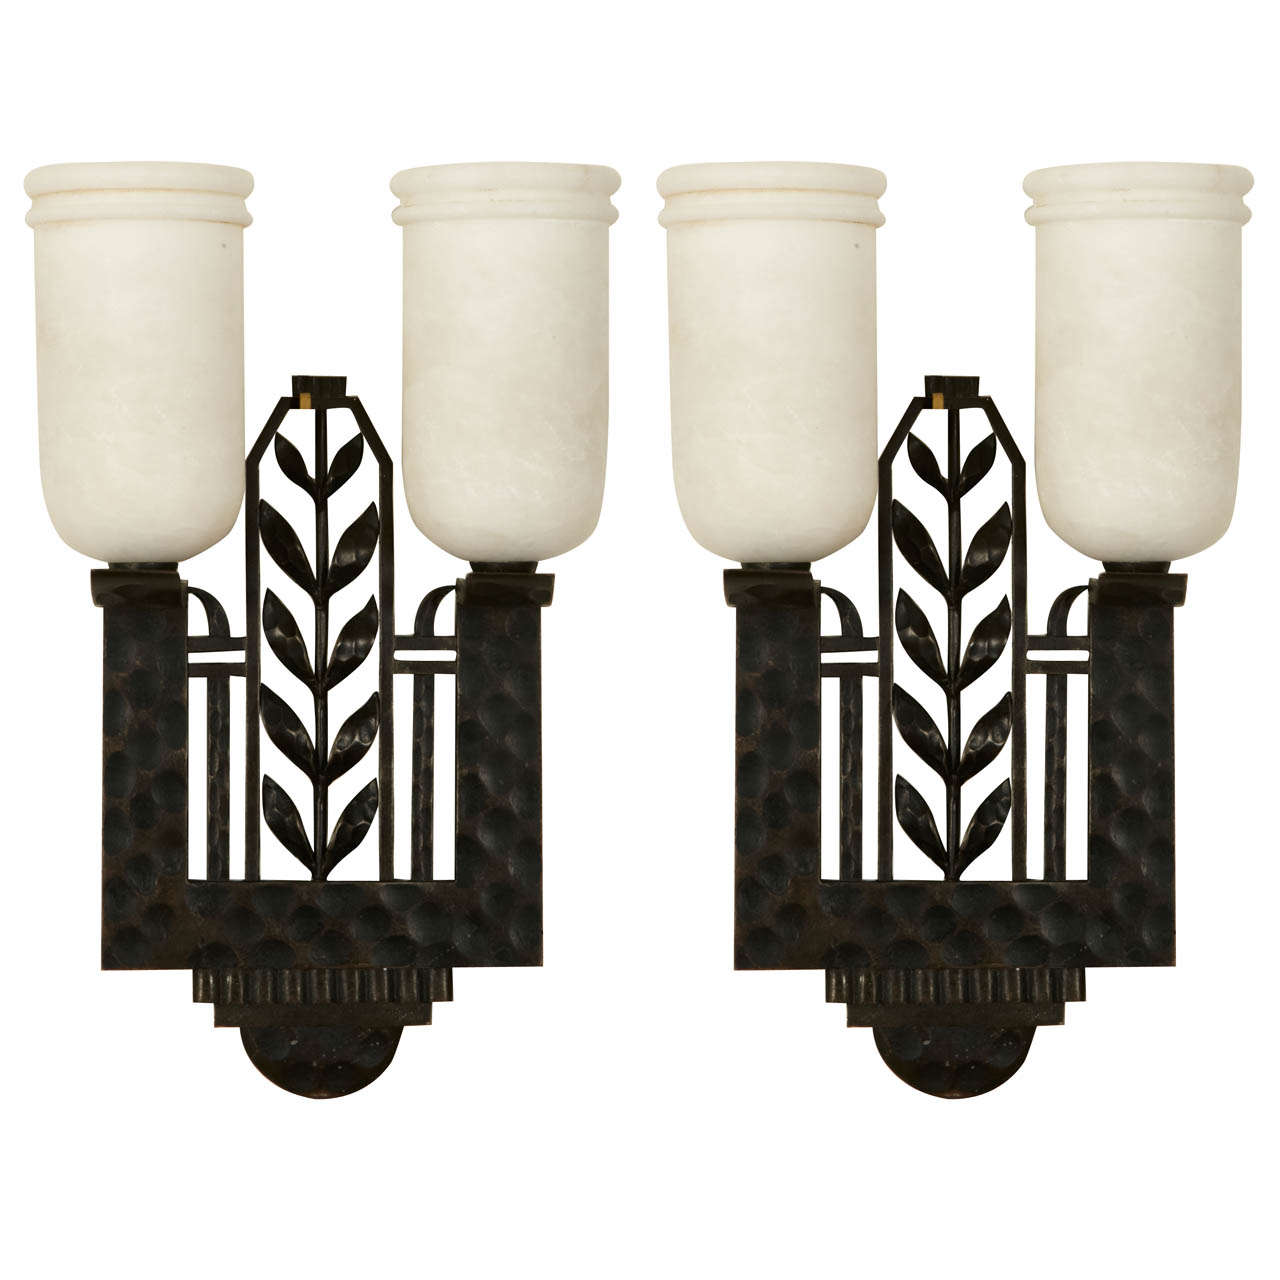 Rare Pair Of Circa 1925 Sconces Signed By Edgar Brandt At